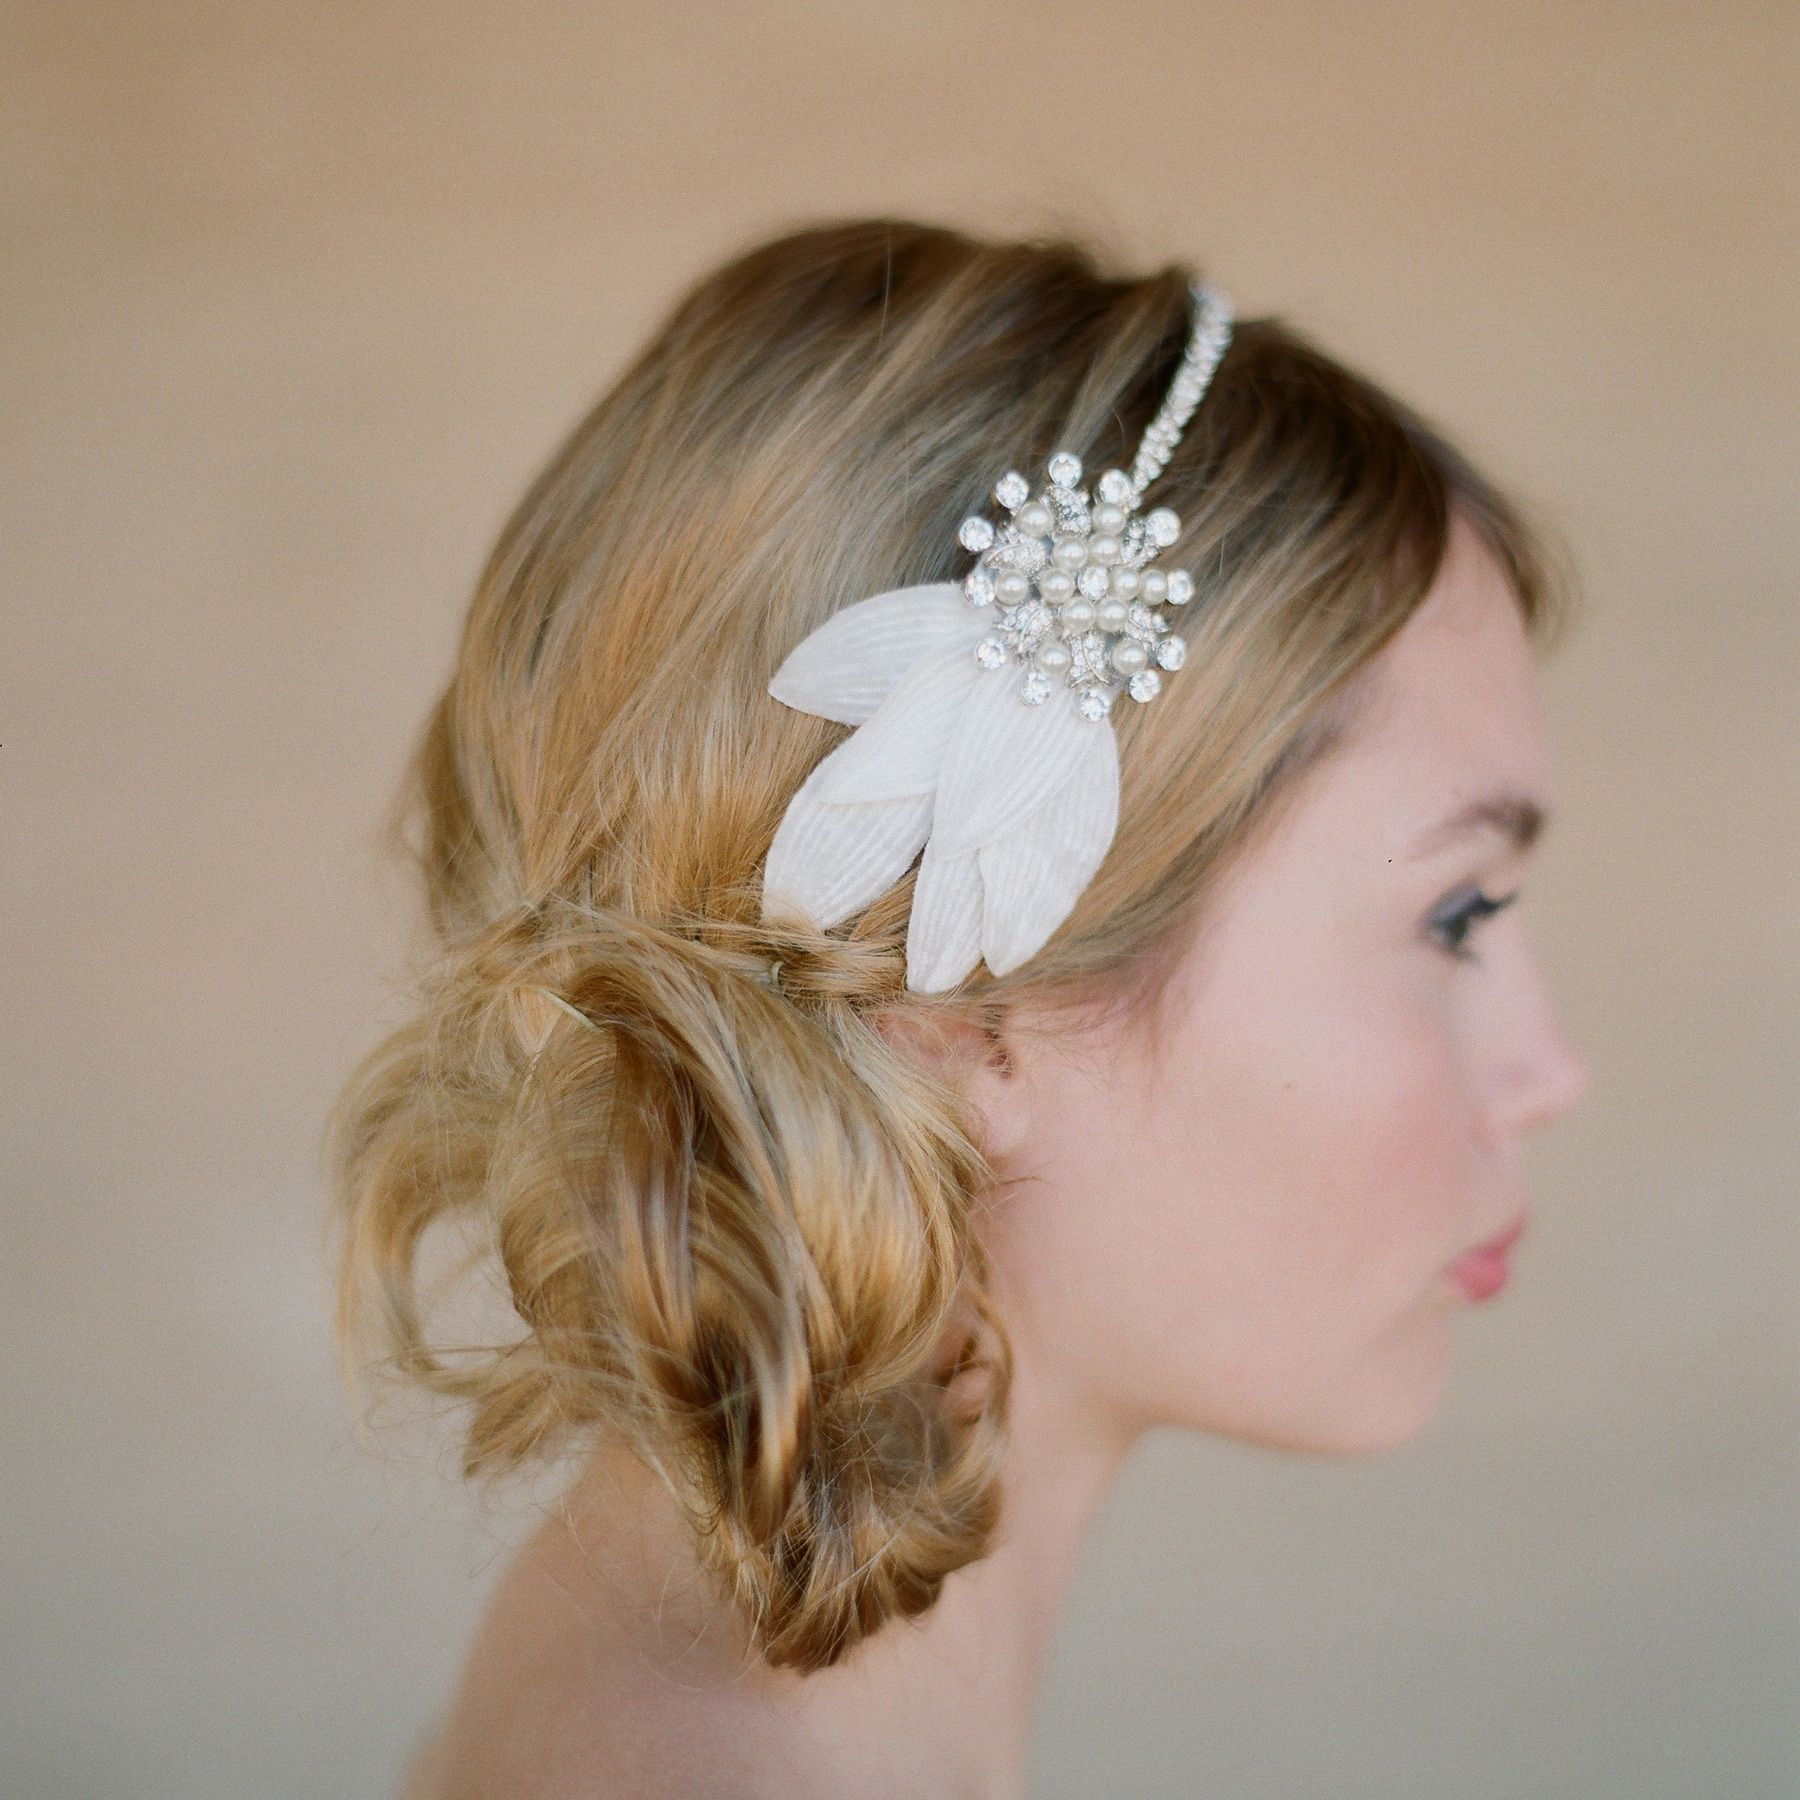 wedding-accessories-bridal-hairstyles-updo-rhinestone-headband